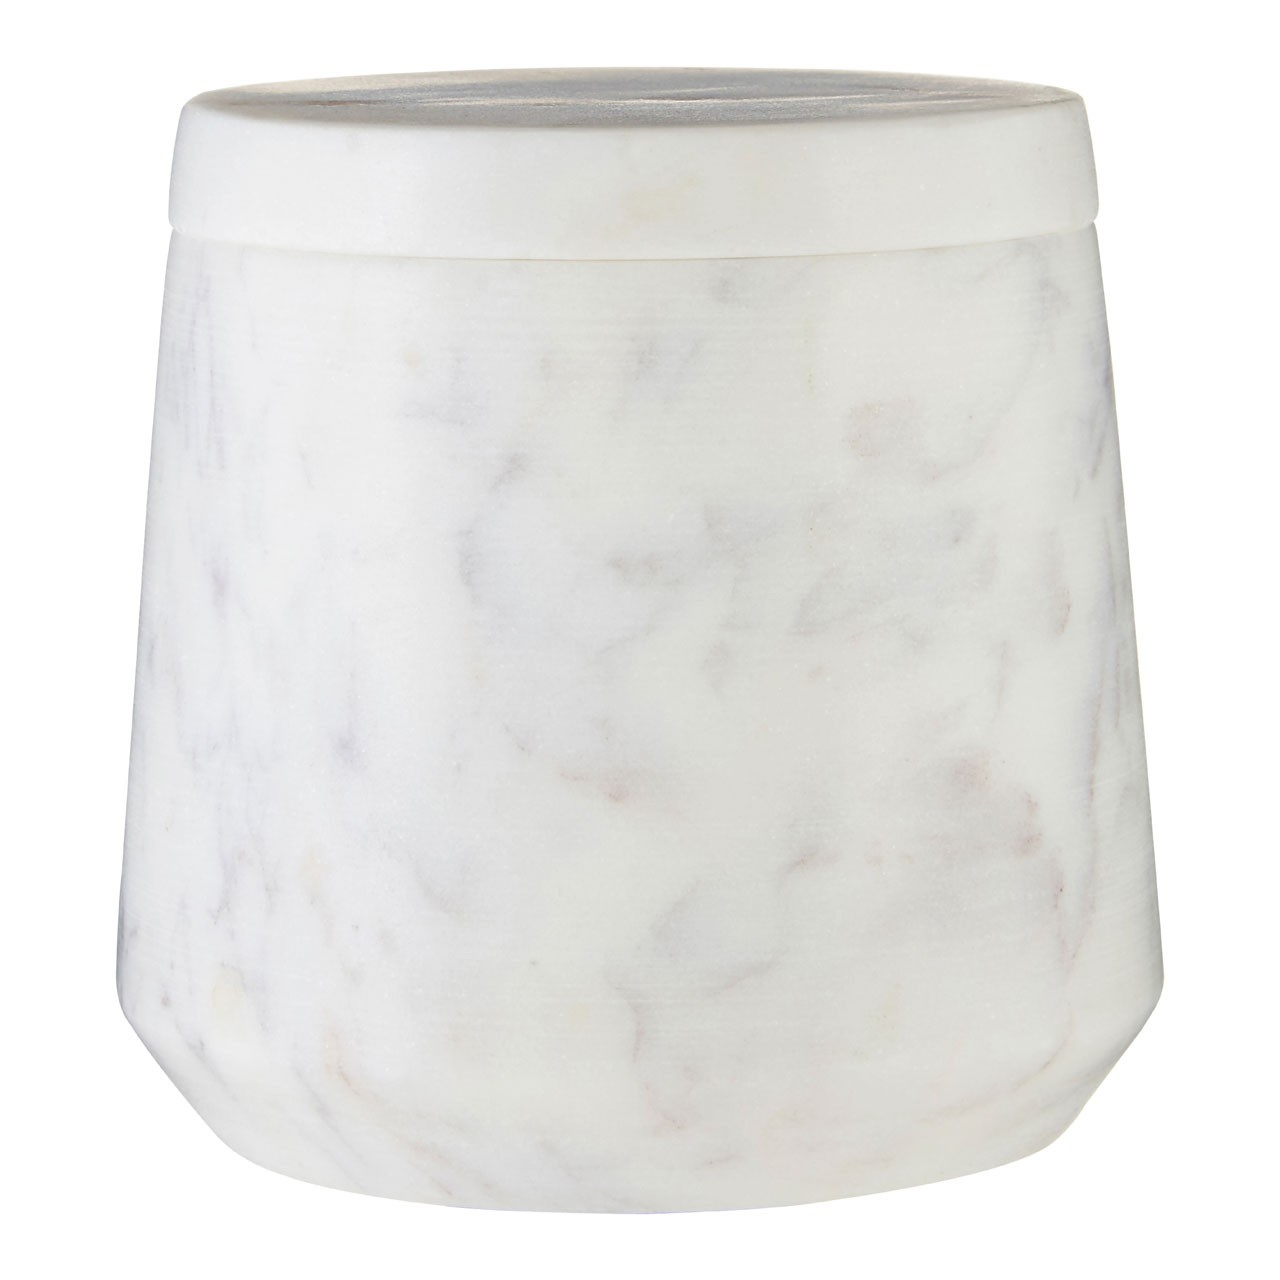 Prime Furnishing Marble Cotton Jar - Off-white